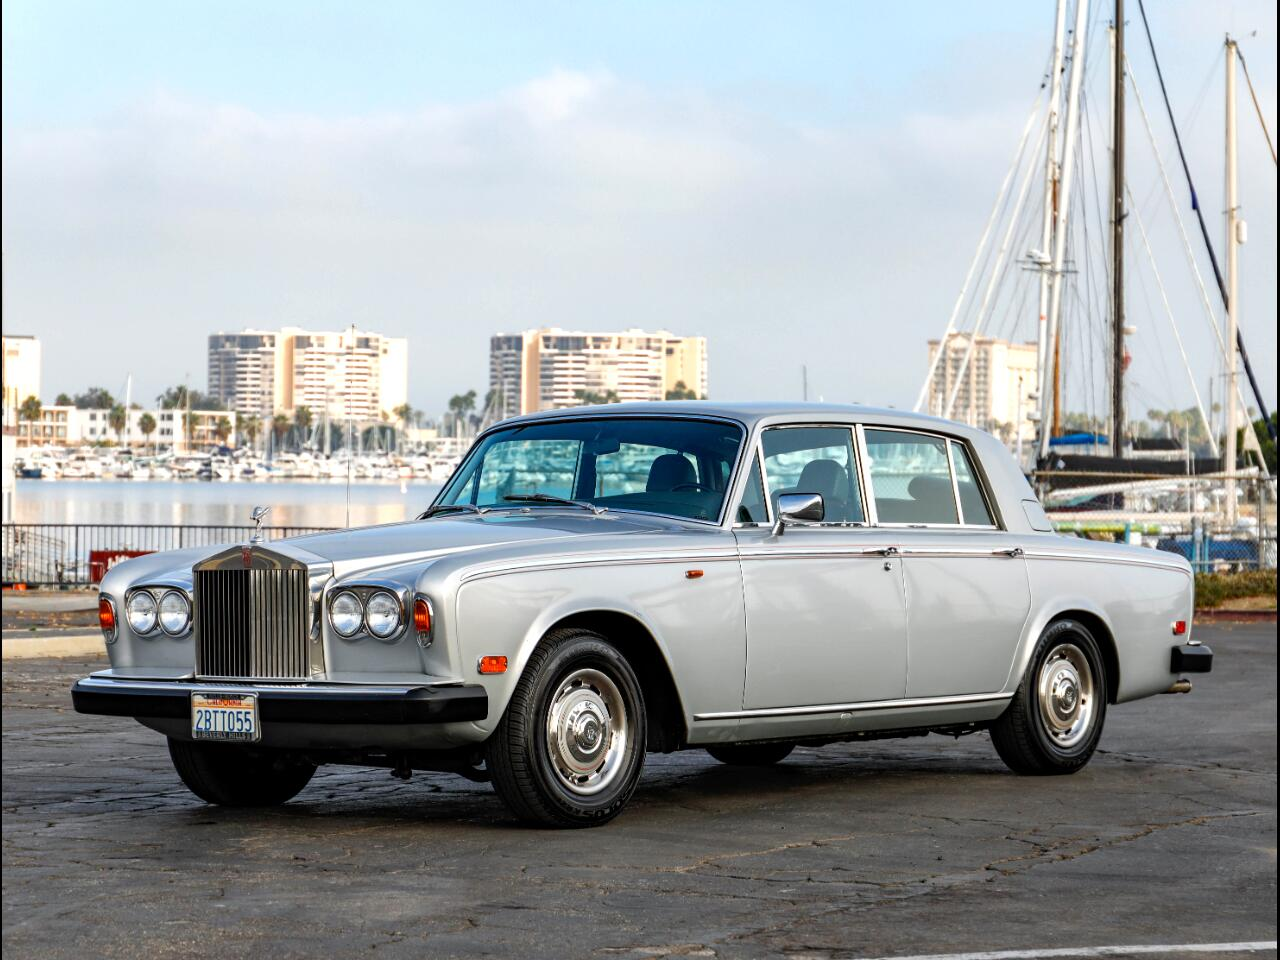 1979 Rolls-Royce Silver Shadow II 75th Anniversary Edition